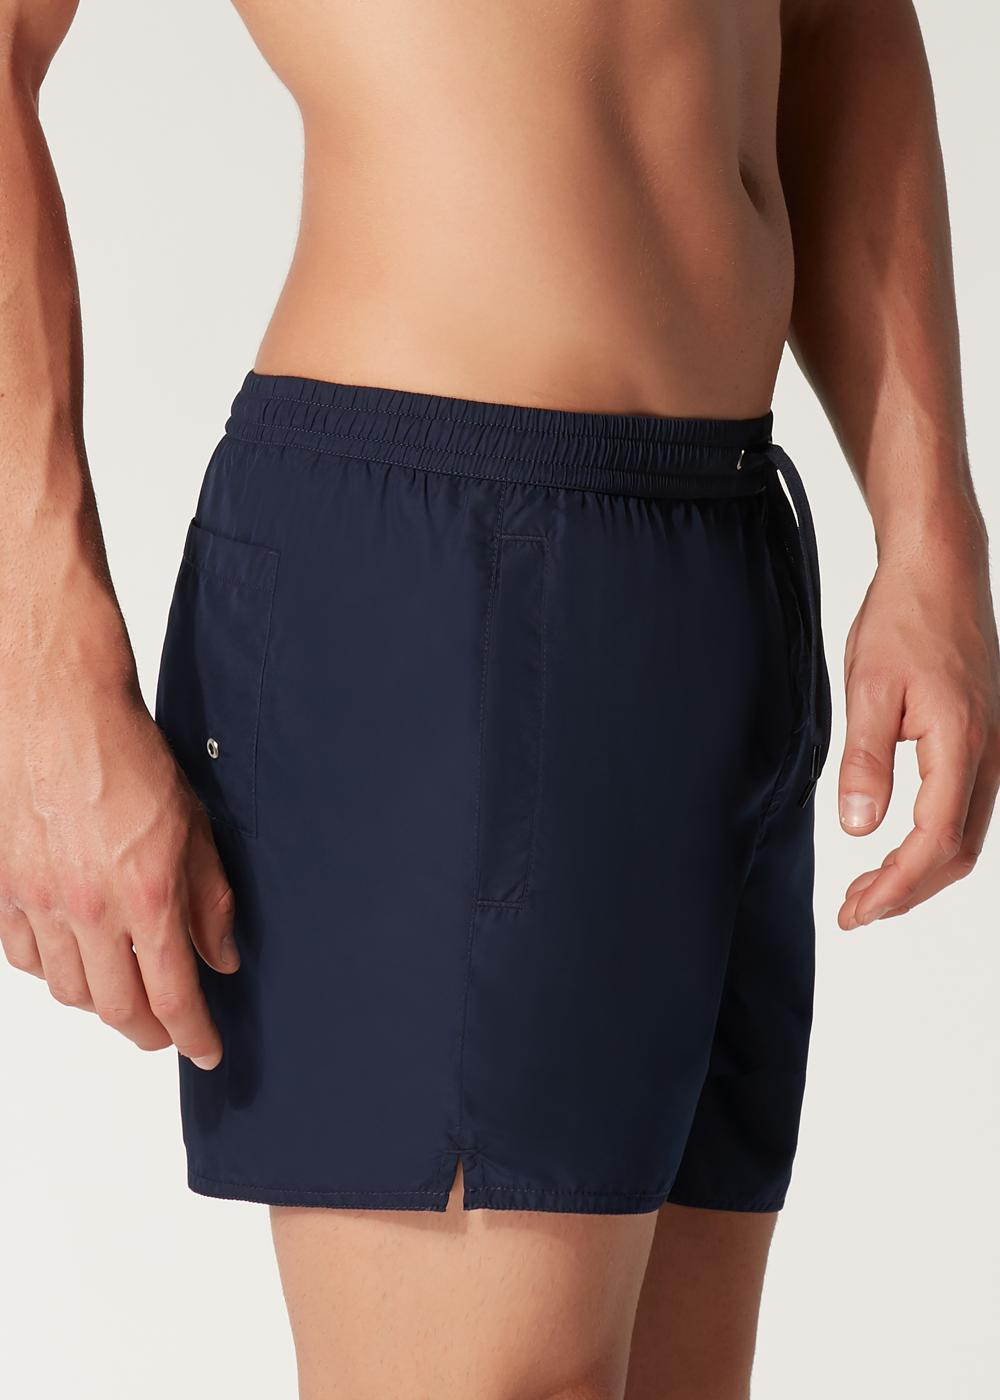 Formentera Cropped Patterned Swimming Shorts